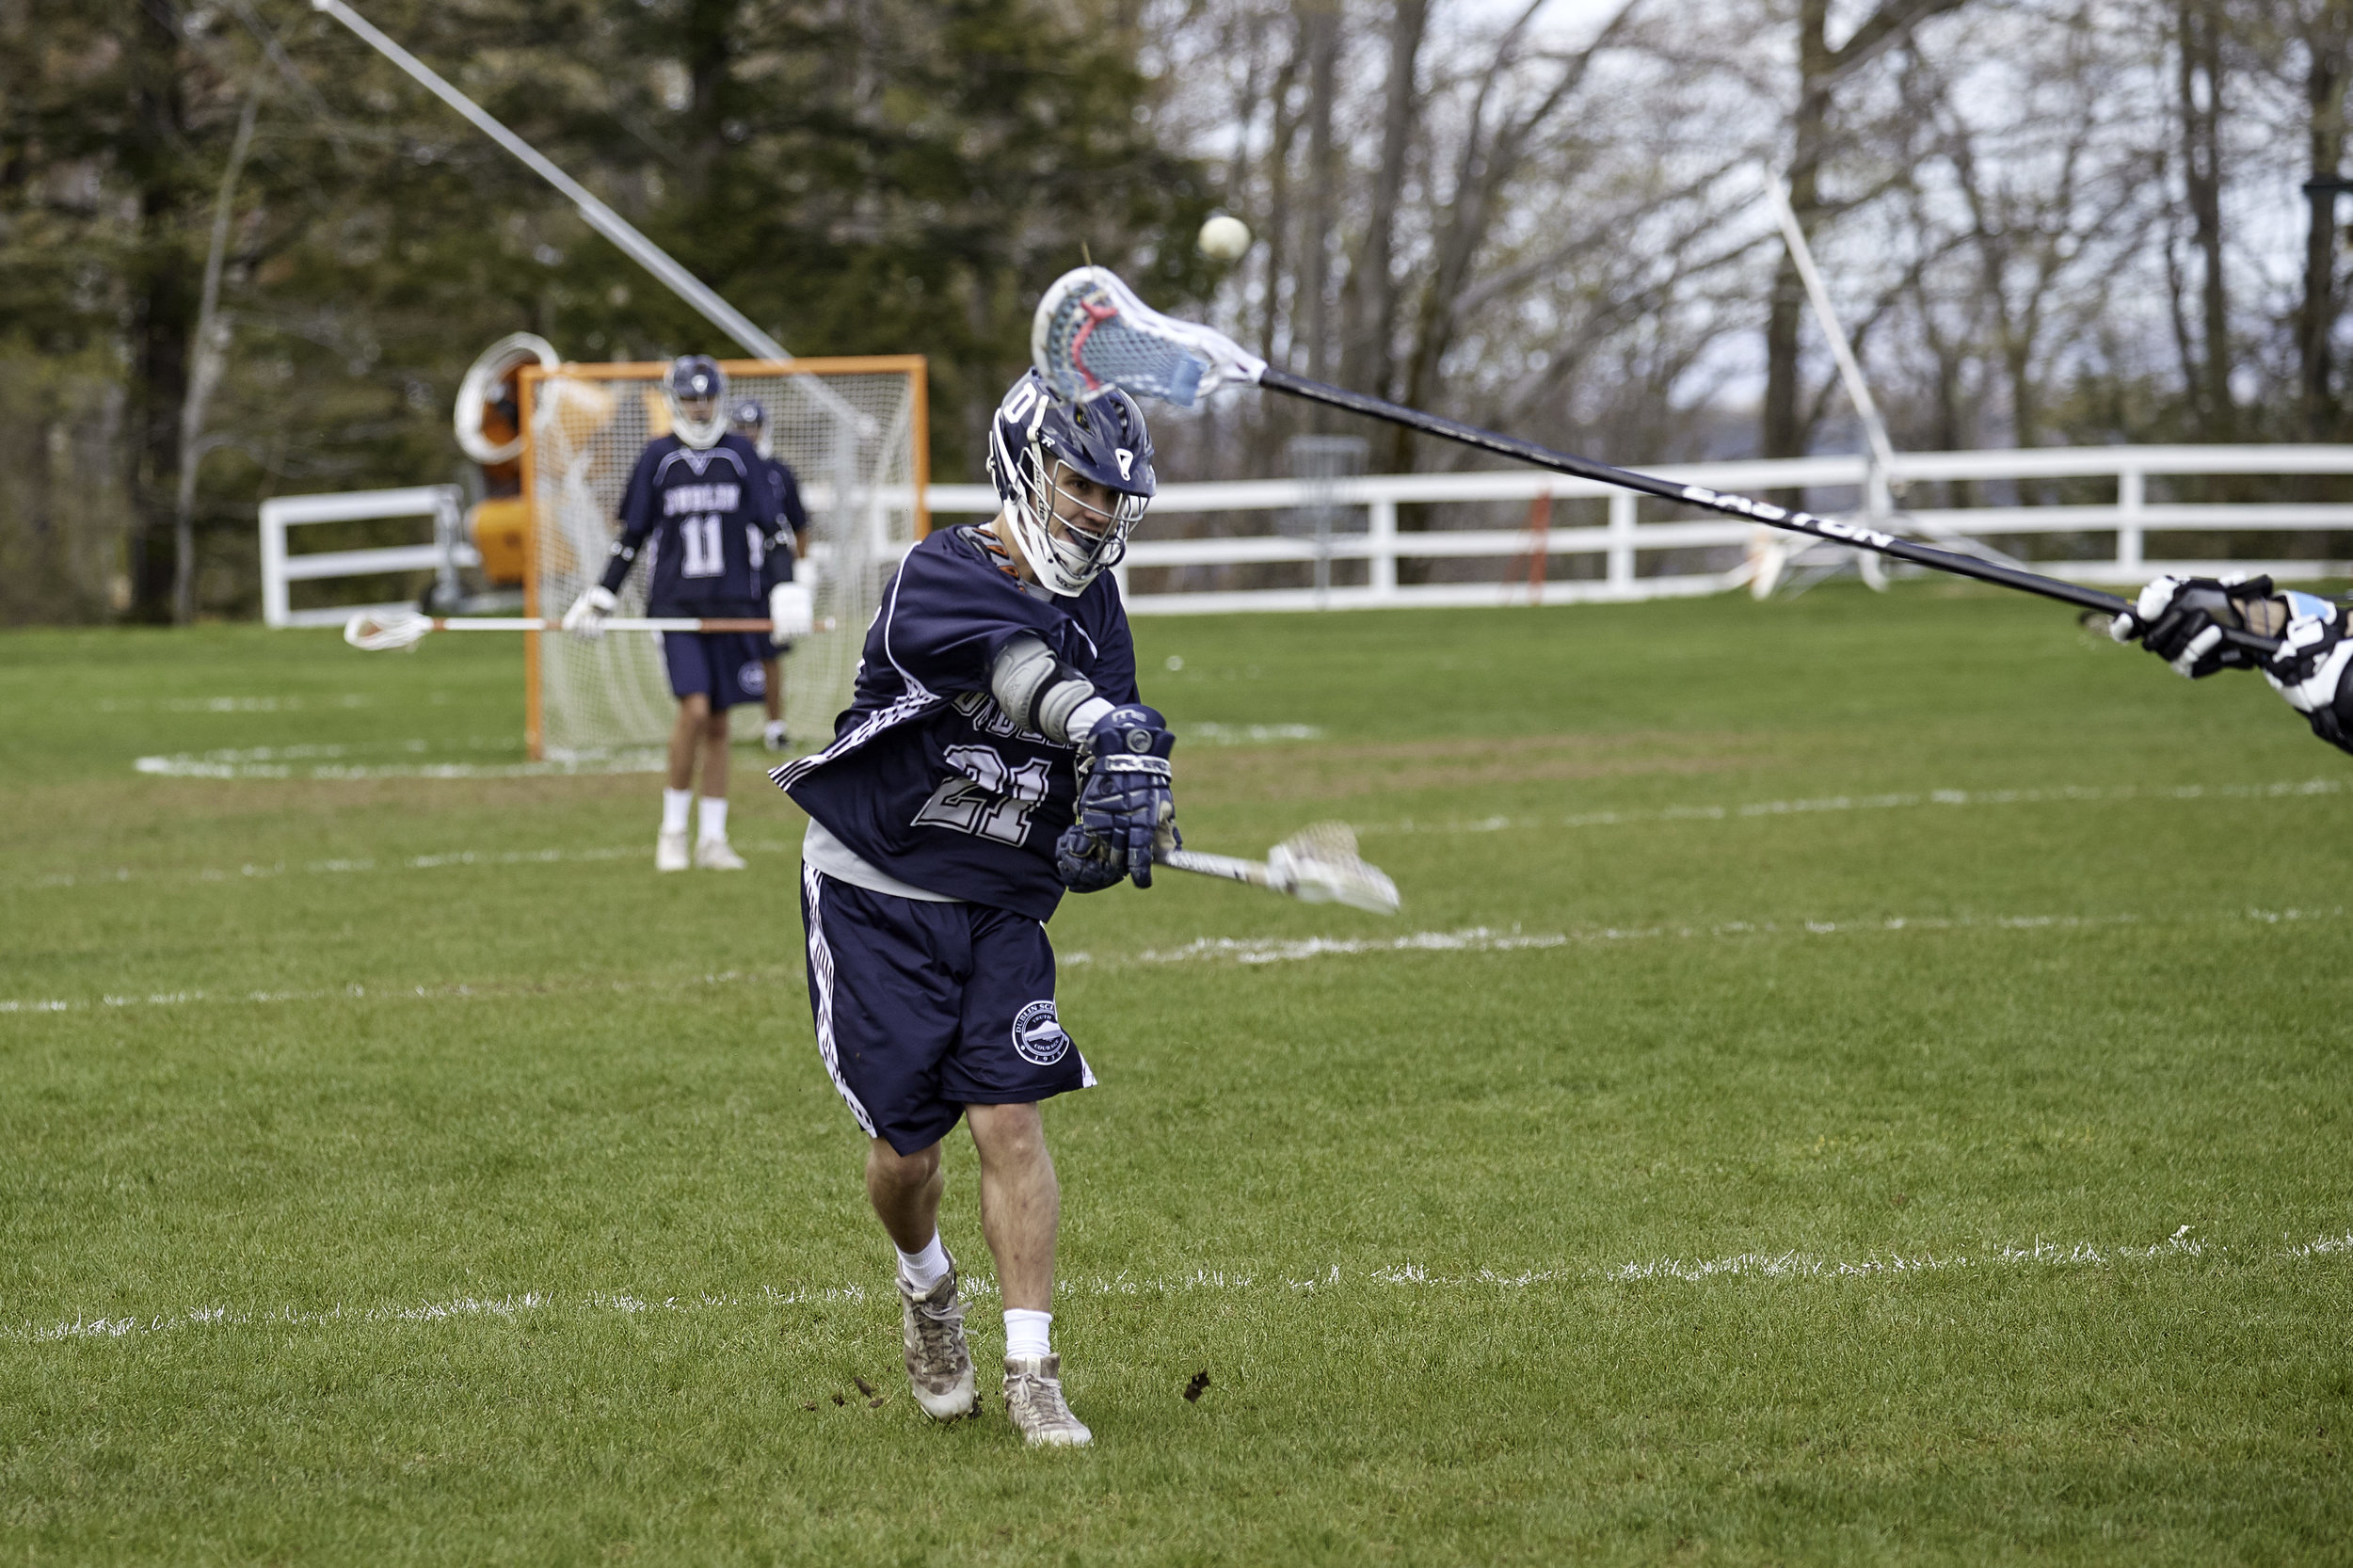 Boys Lax vs Northfield Mount Hermon JV - May 15 2019 - 0039.jpg